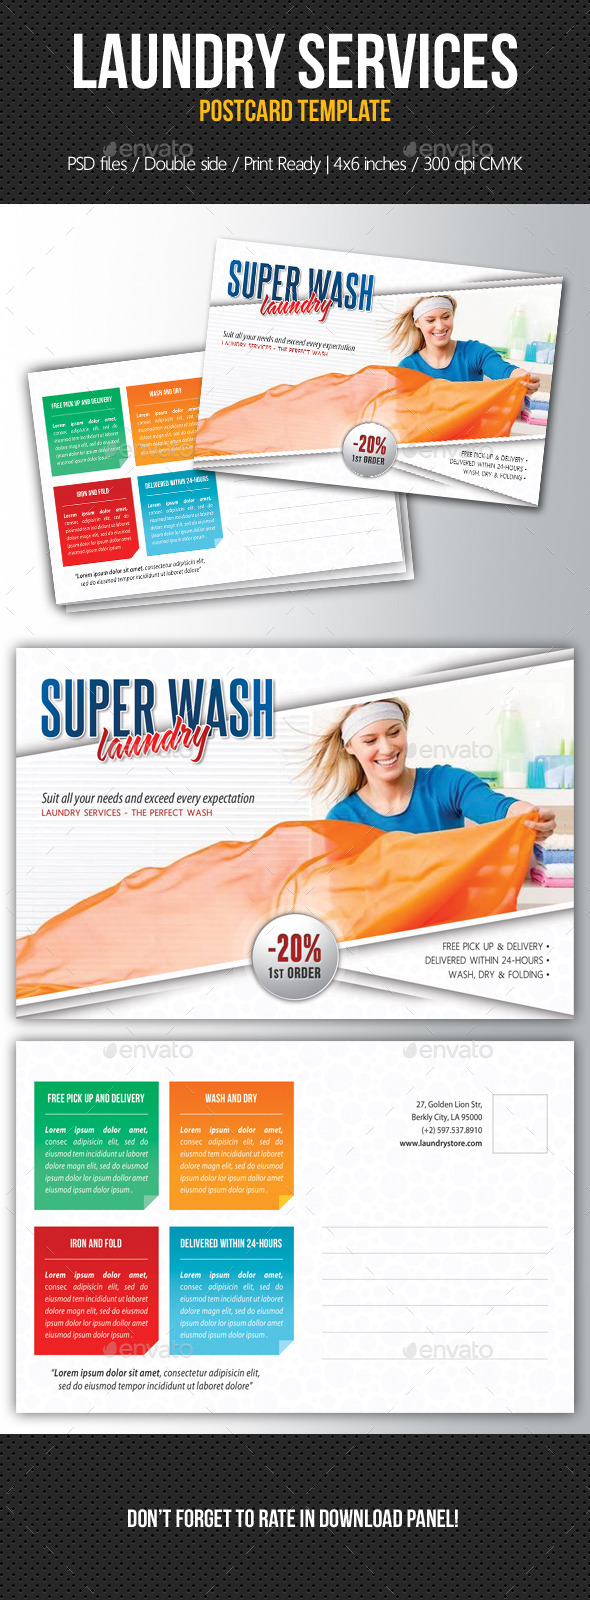 Laundry Services Postcard Template V03